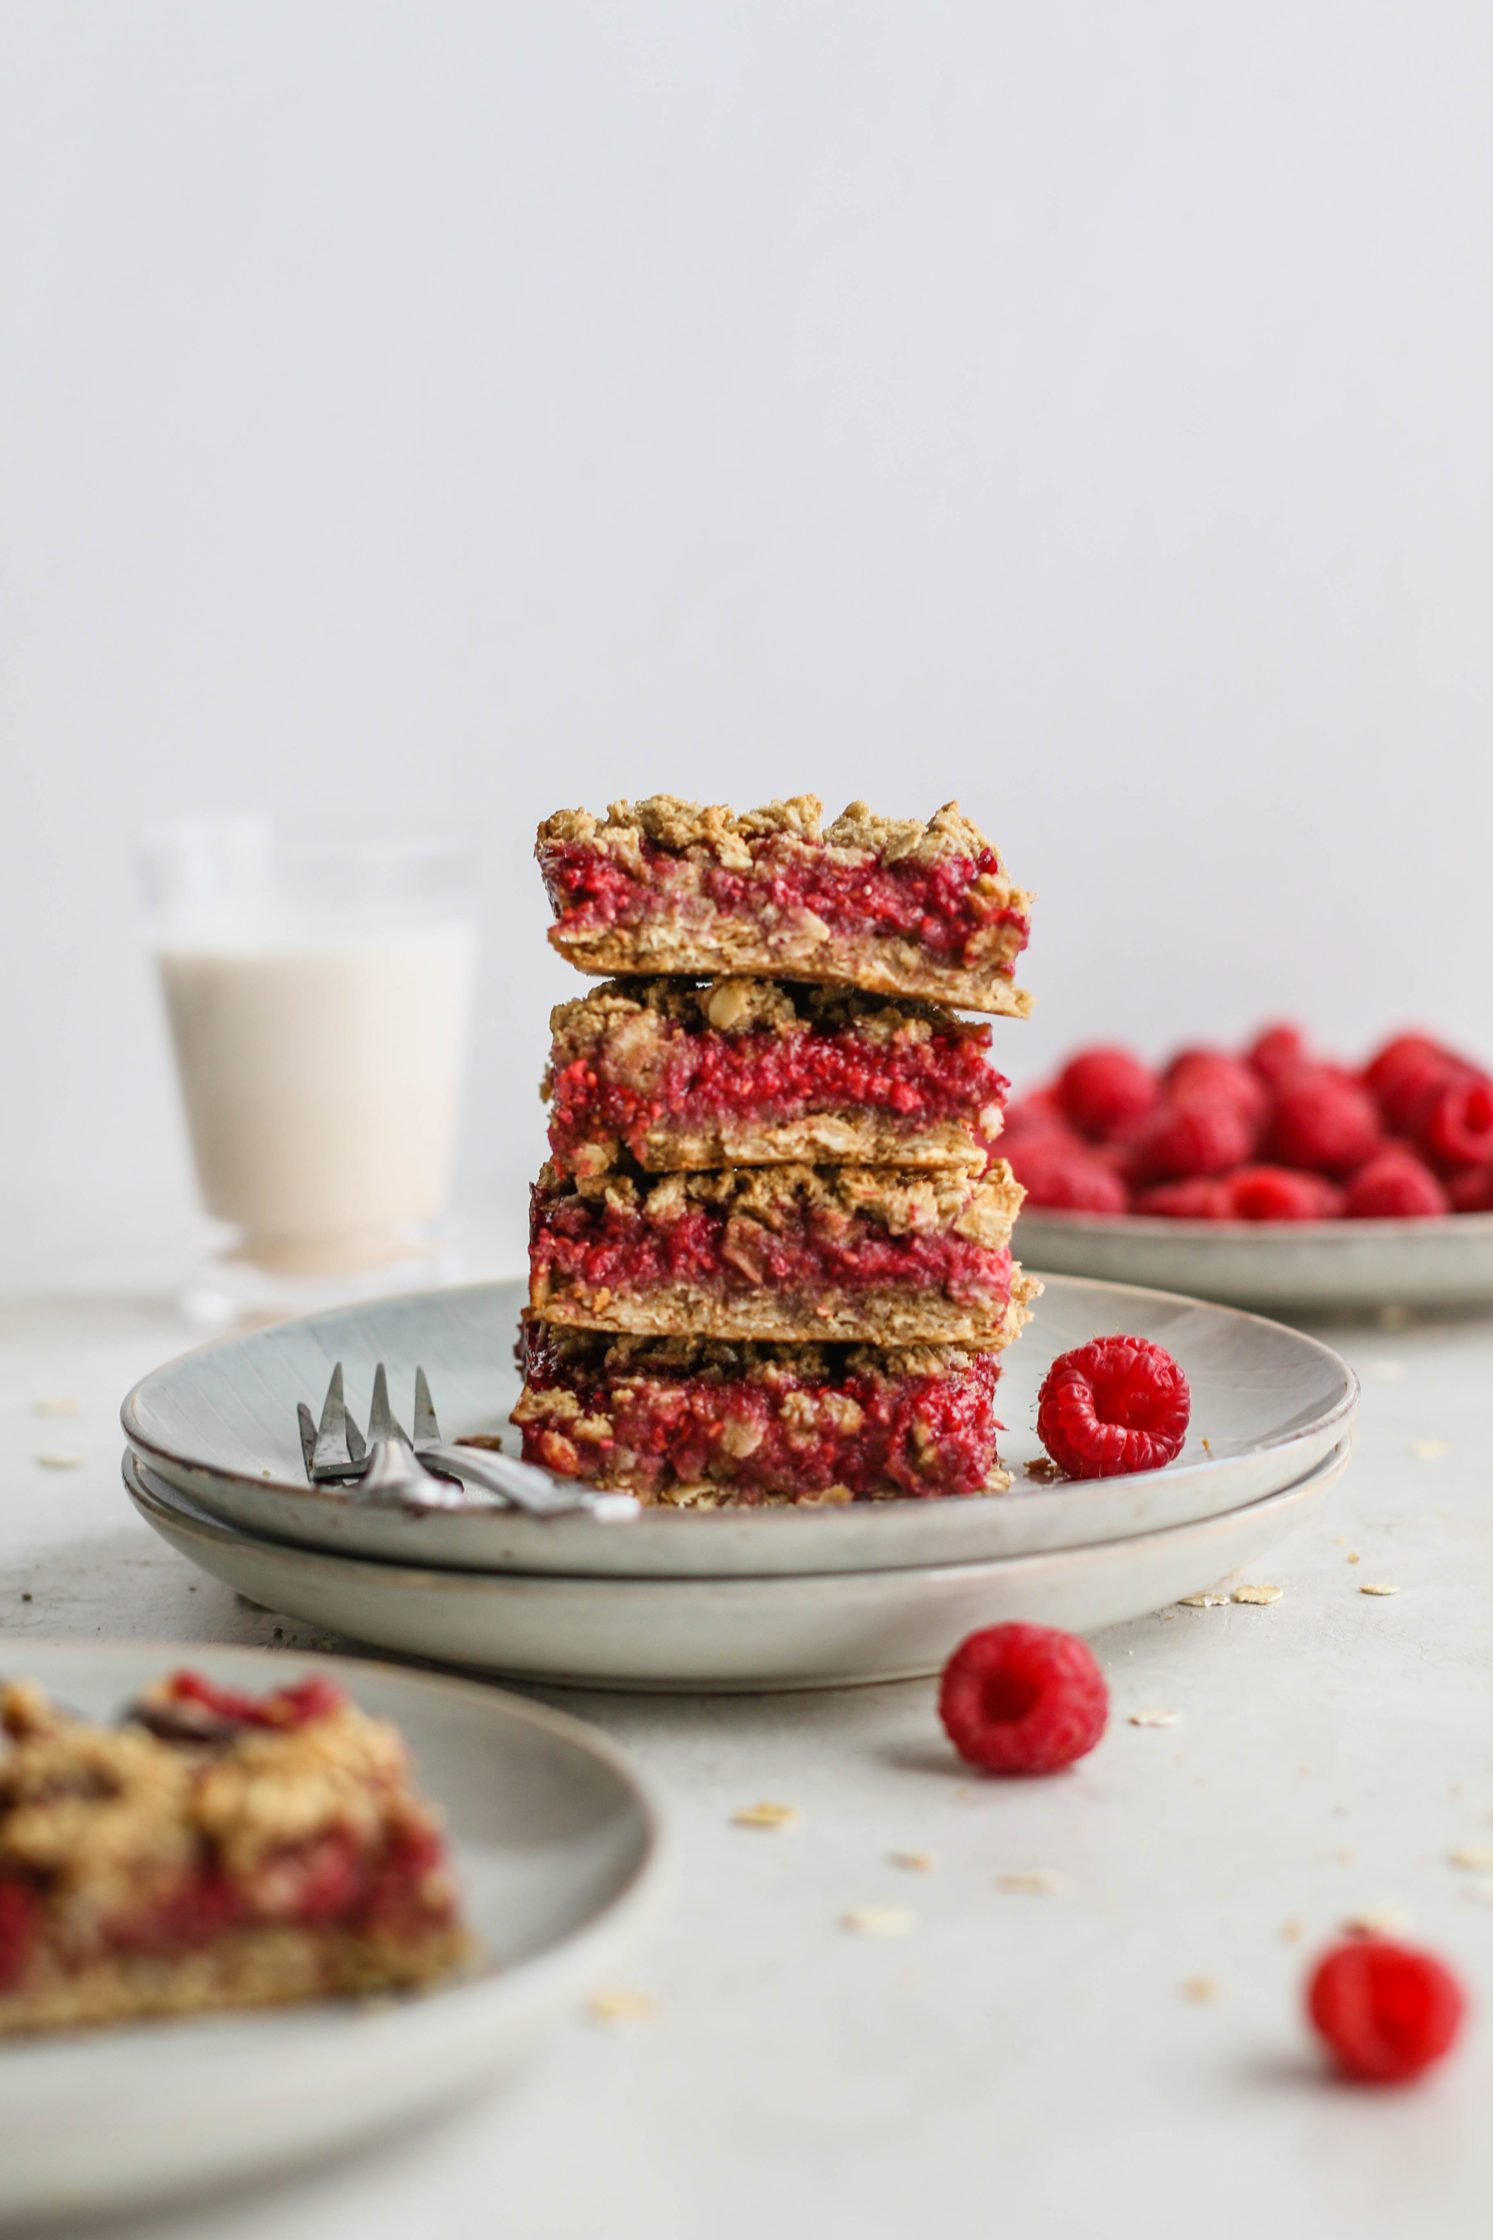 Raspberry Oat Crumble Bars by Flora & Vino